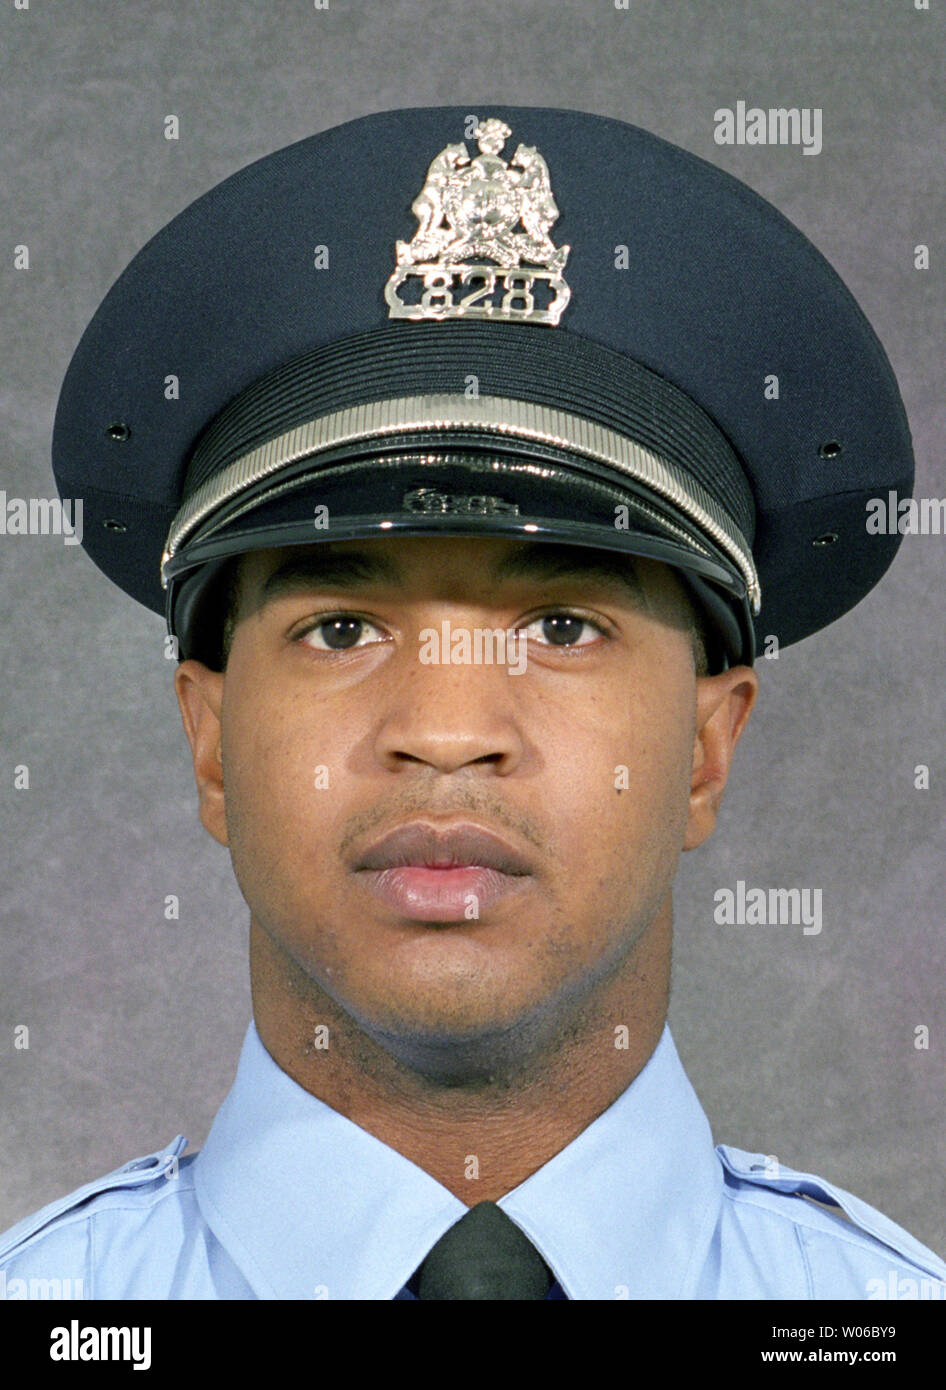 The St. Louis Metropolitan Police Department has released a photograph of police officer Norvelle Brown (22) on August 16, 2007, who was shot and killed during a car stop in north St. Louis on August 15, 2007. Police say the officer's service weapon and another weapon were recovered at the scene but no suspects have been apprehended yet. Brown had been a police officer for less than one year. (UPI Photo/St. Louis Metropolitan Police Department) Stock Photo